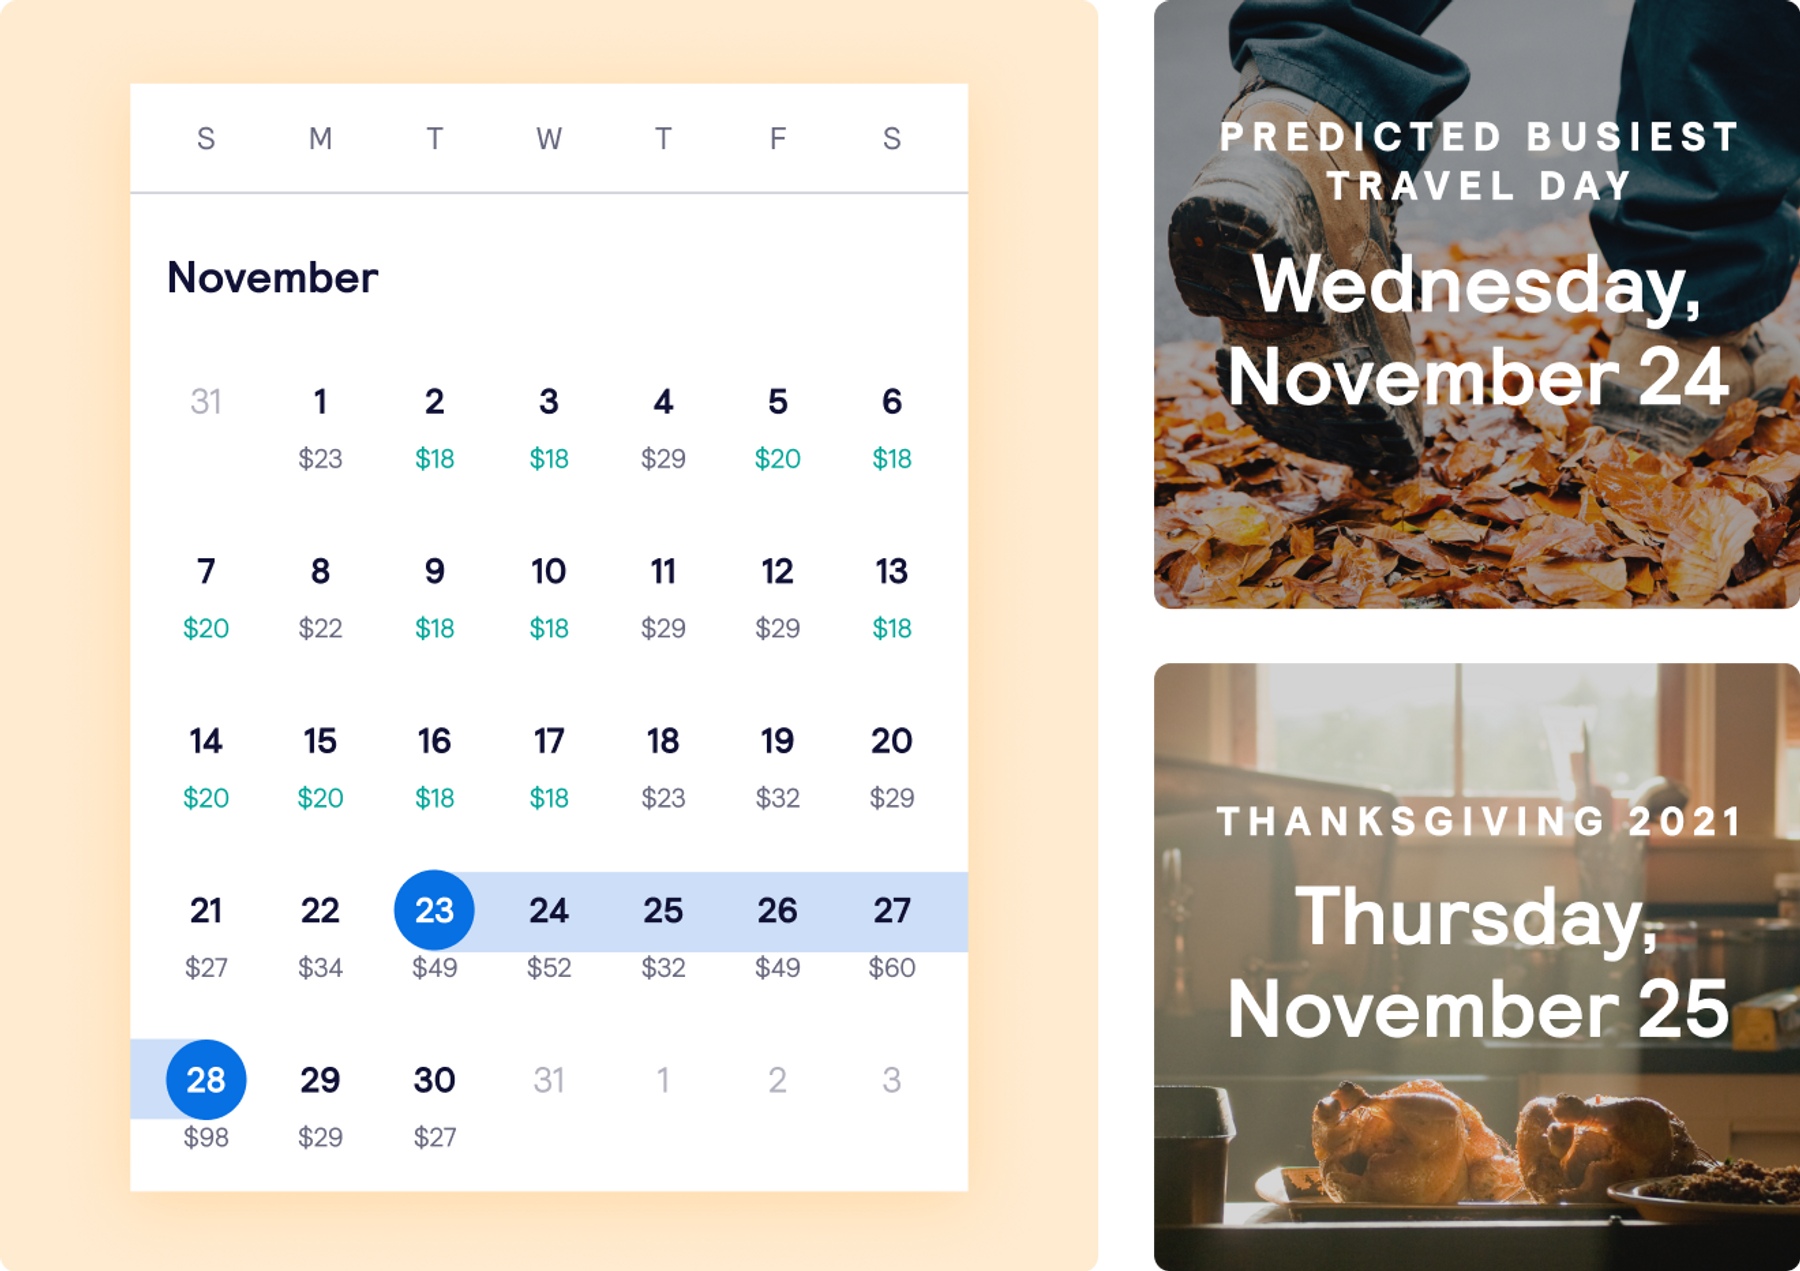 Wednesday 24 November is predicted to be the busiest travel day.   Thanksgiving 2021 falls on Thursday 25 November.